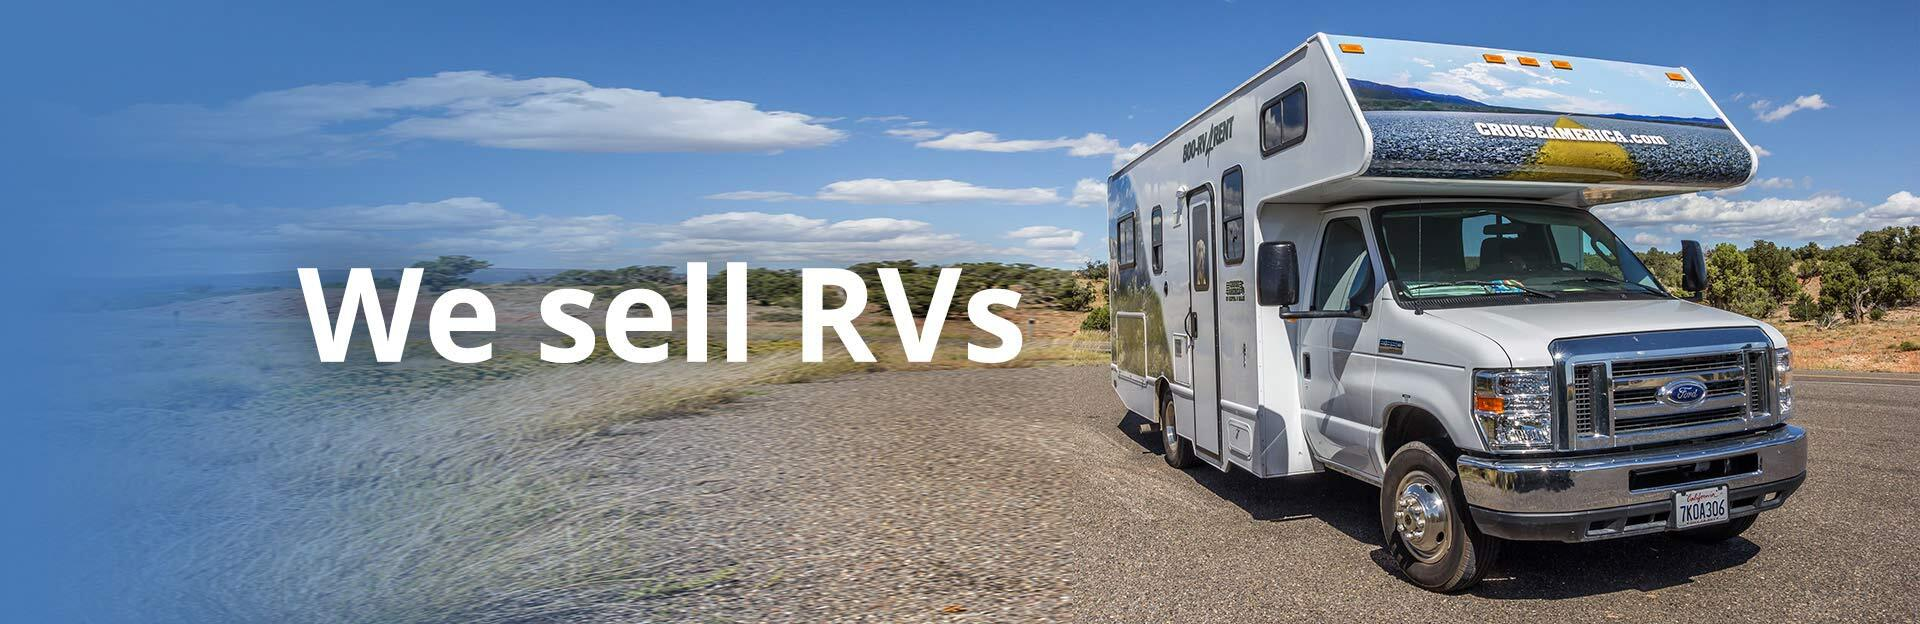 RVs for Sale in Spokane WA